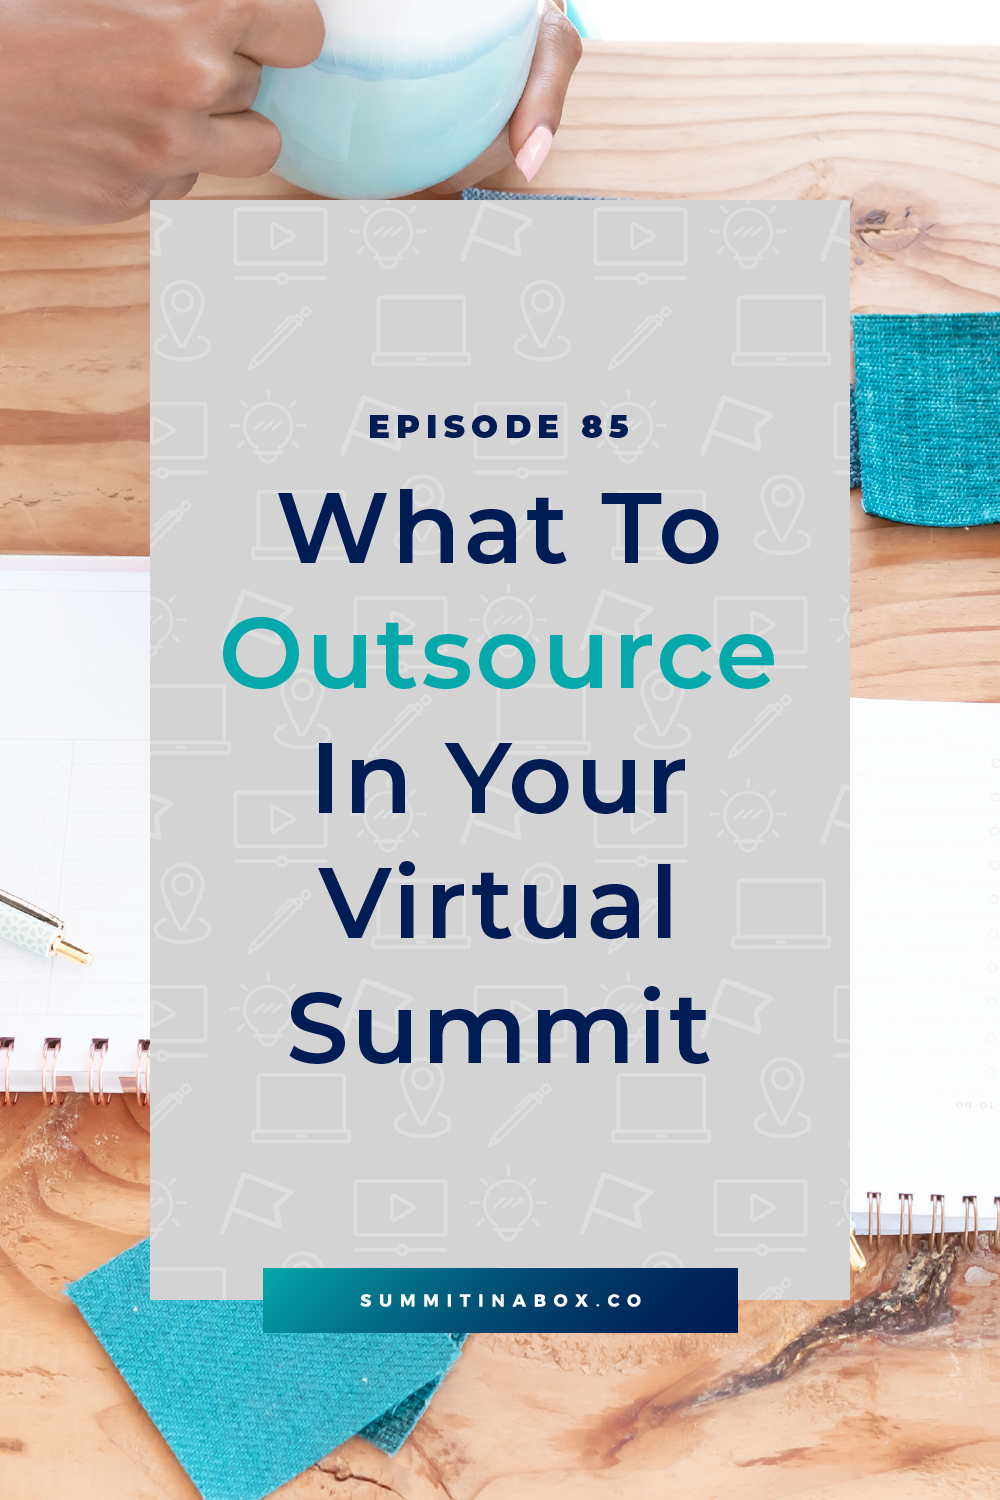 There's a lot that goes into hosting a virtual summit and the best way to lighten the load is to outsource. Let's cover what to outsource in your virtual summit!